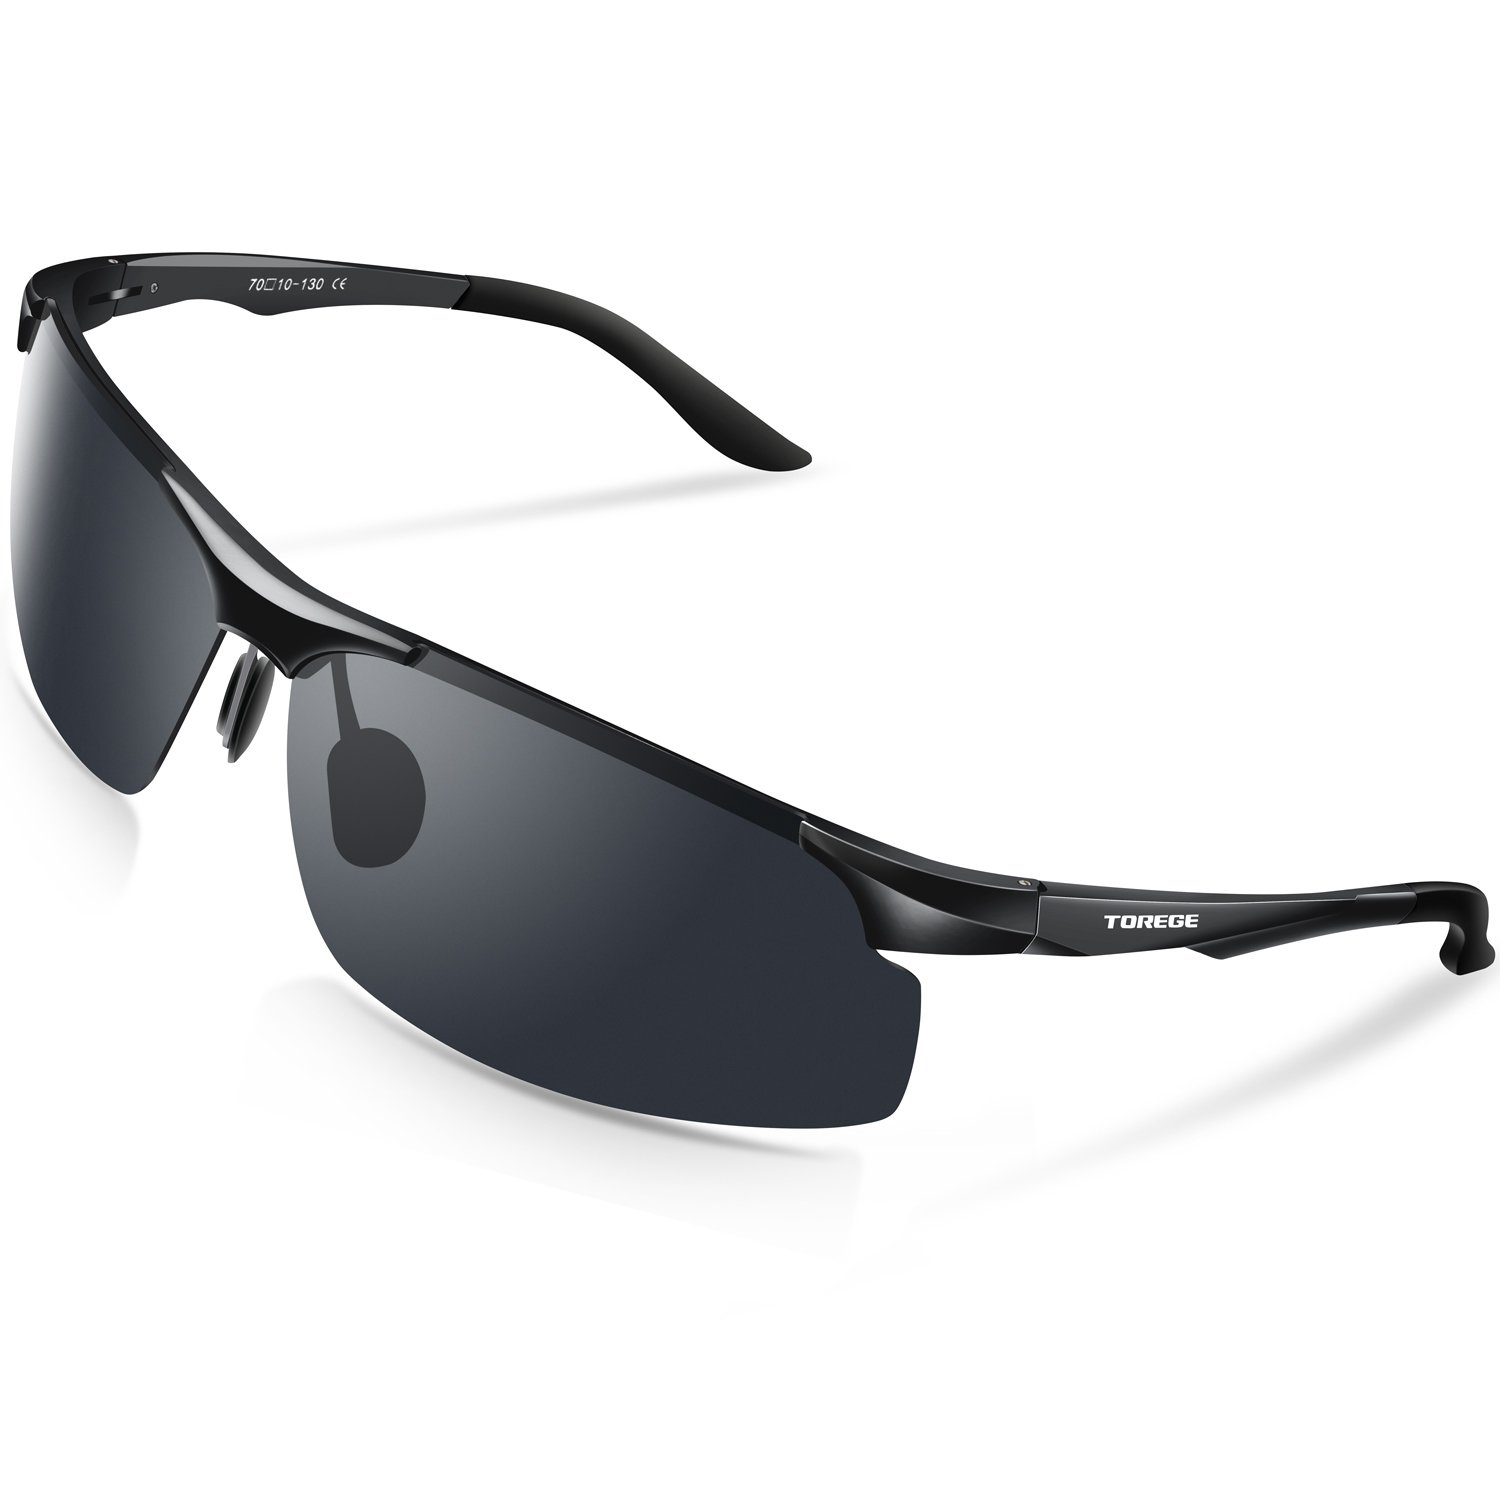 490b8078d03 Amazon.com  TOREGE Men s Sports Style Polarized Sunglasses Al-Mg Metal Frame  Glasses M291(Black Black Tips Gray Lens)  Sports   Outdoors